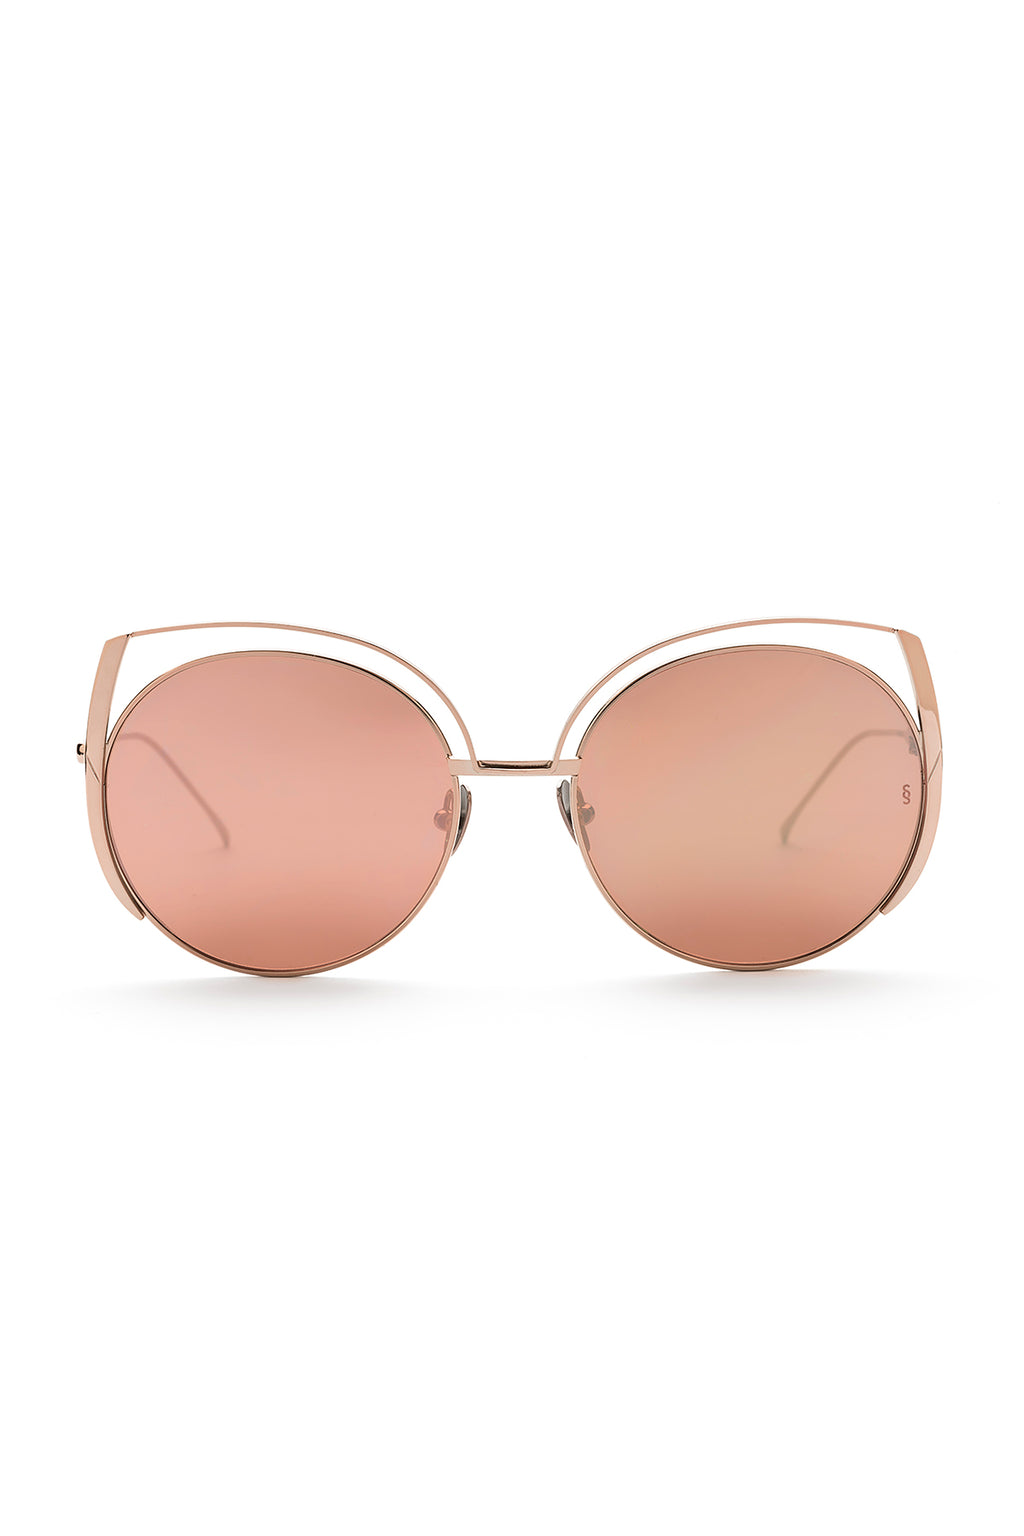 DAISY Sunglasses, Rose Gold